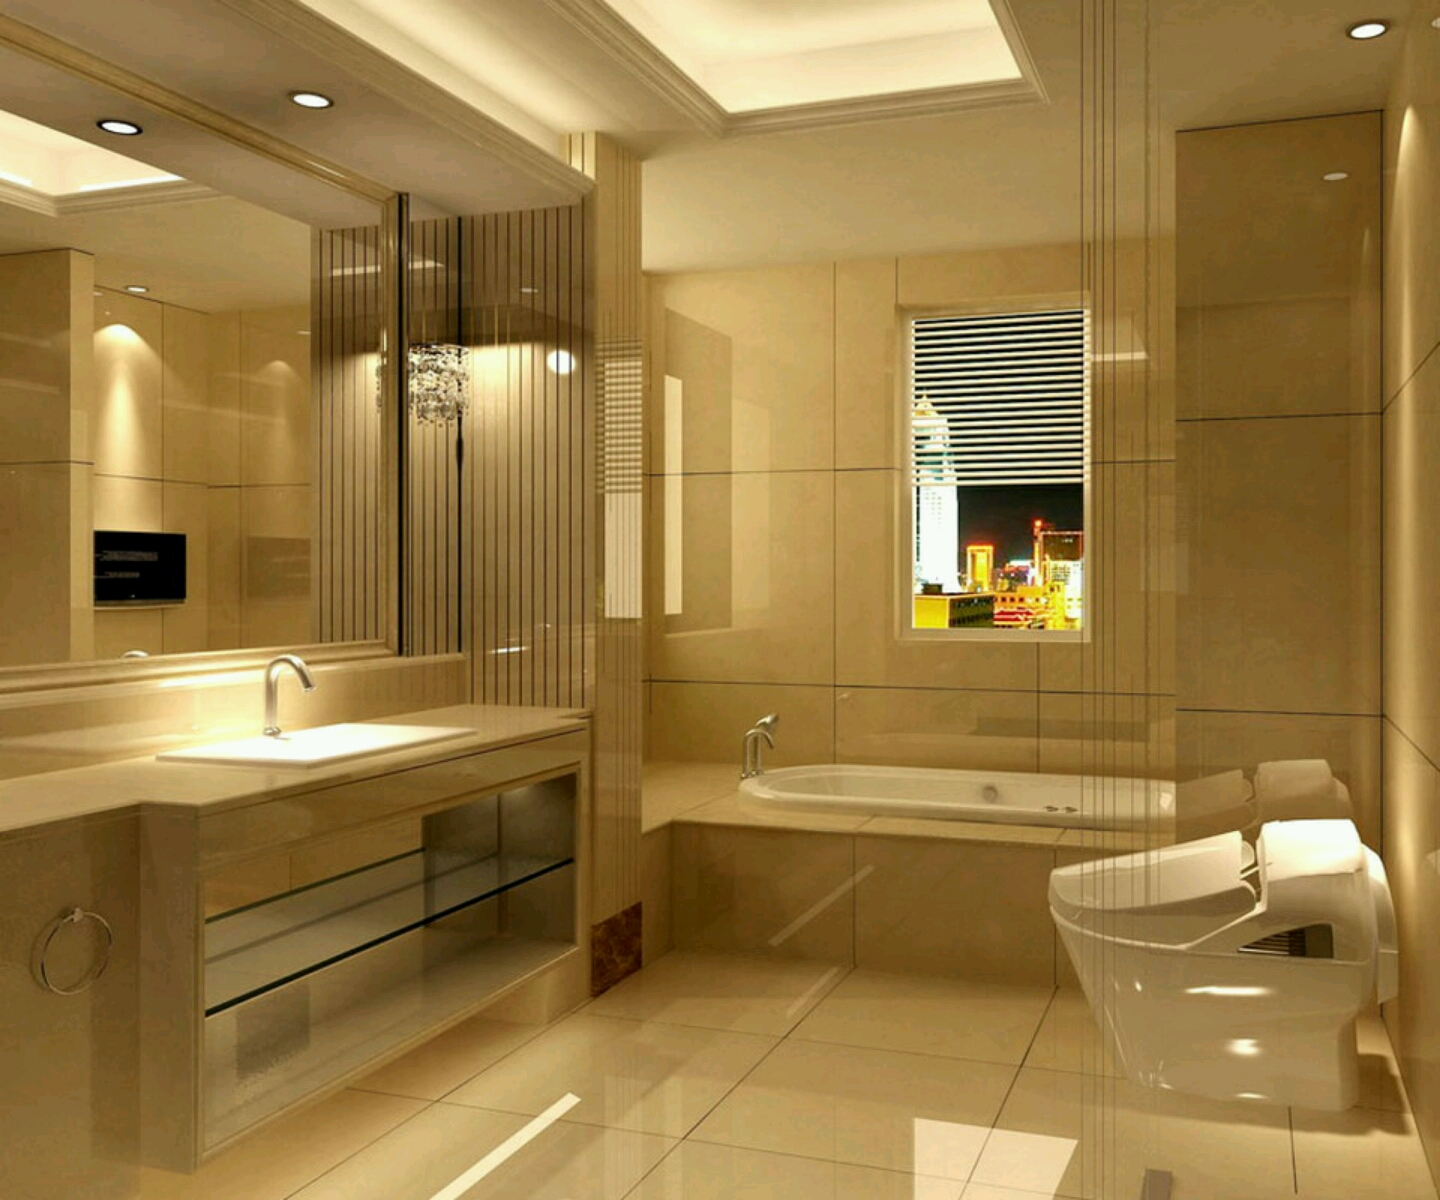 Modern bathrooms setting ideas furniture gallery for Bathroom design ideas modern